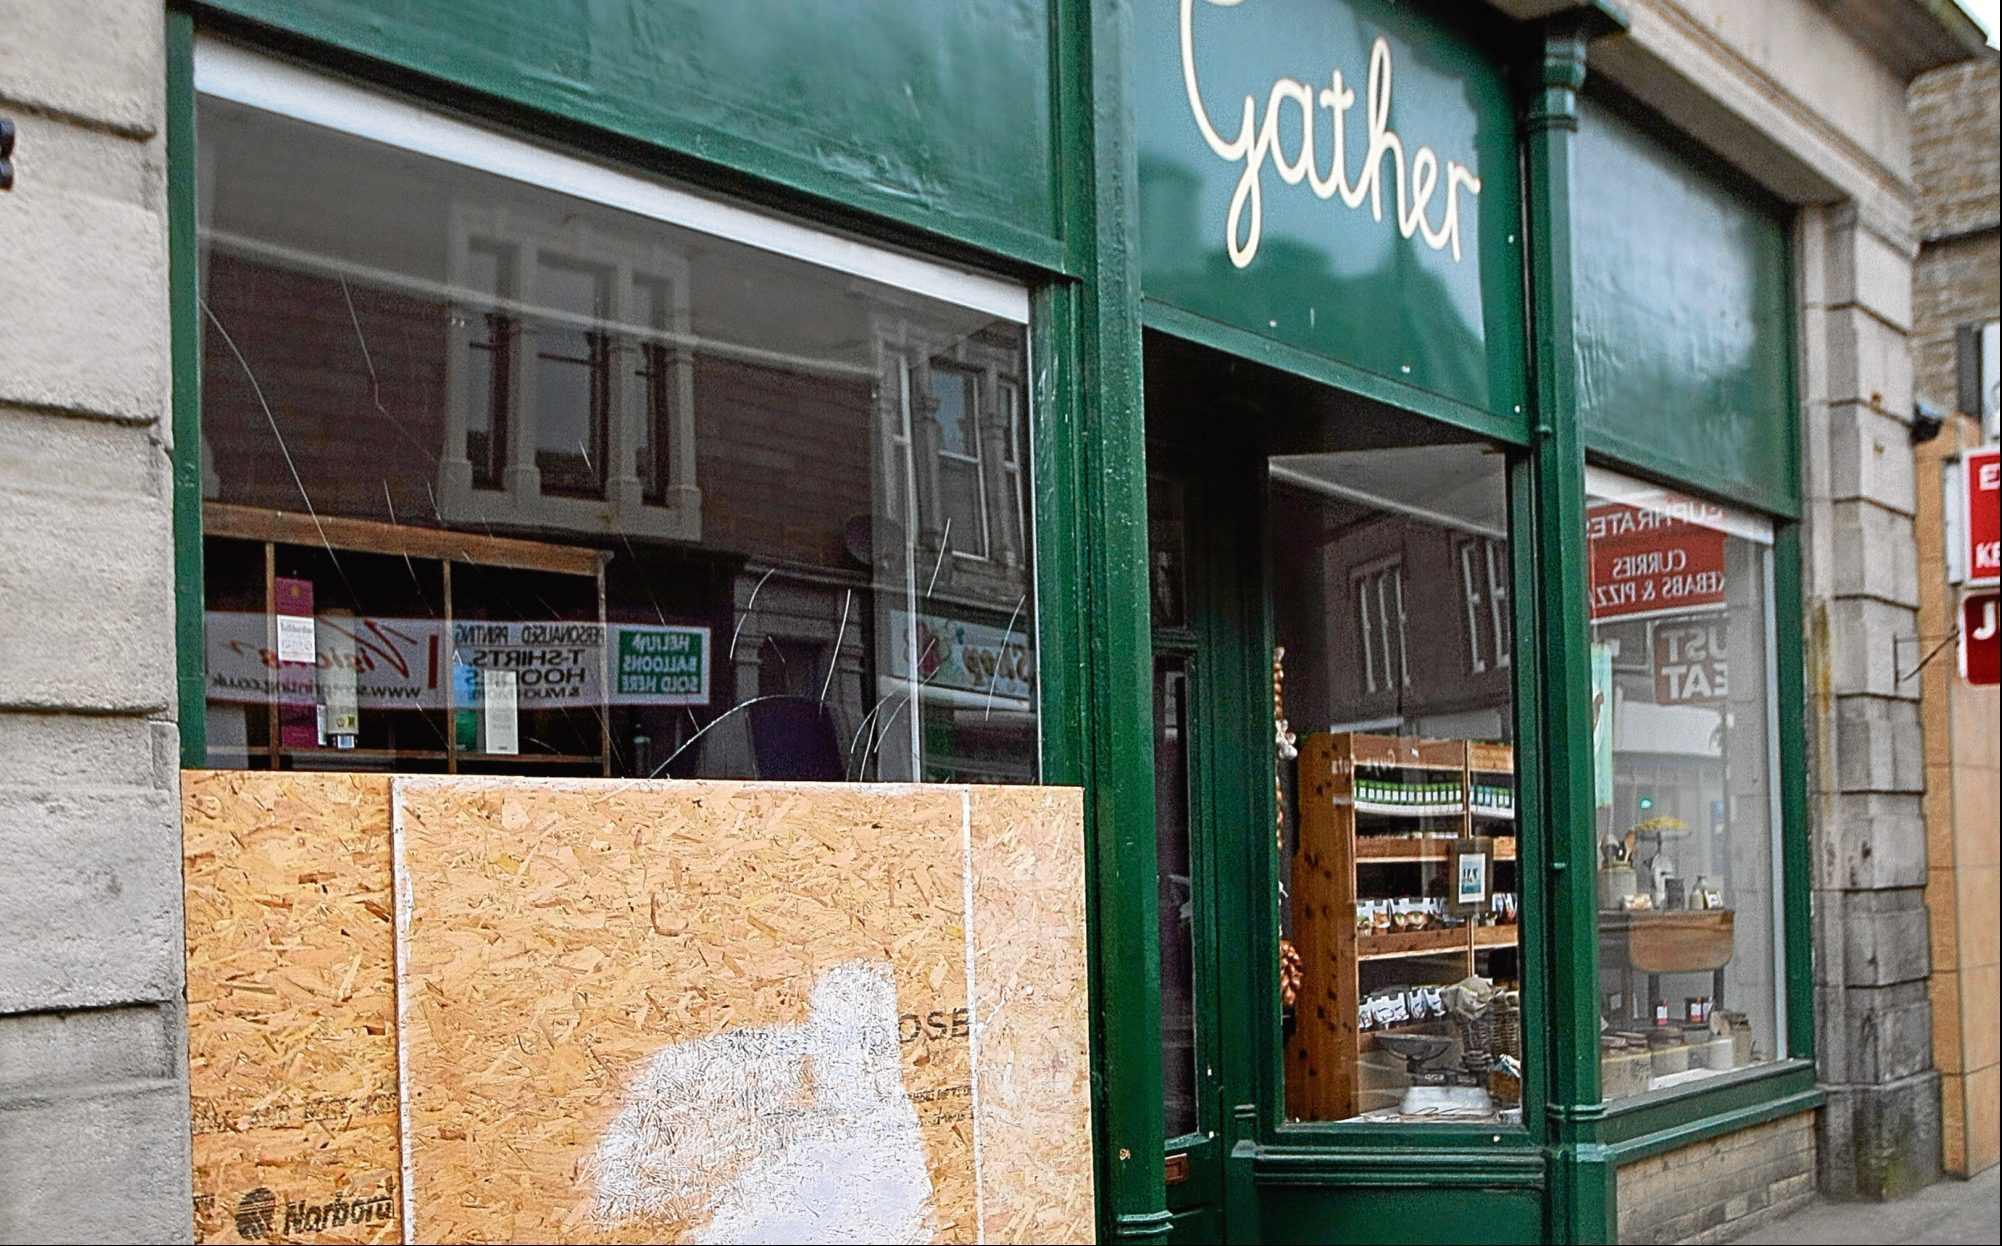 The shopfront of Gather in Carnoustie, showing a damaged window